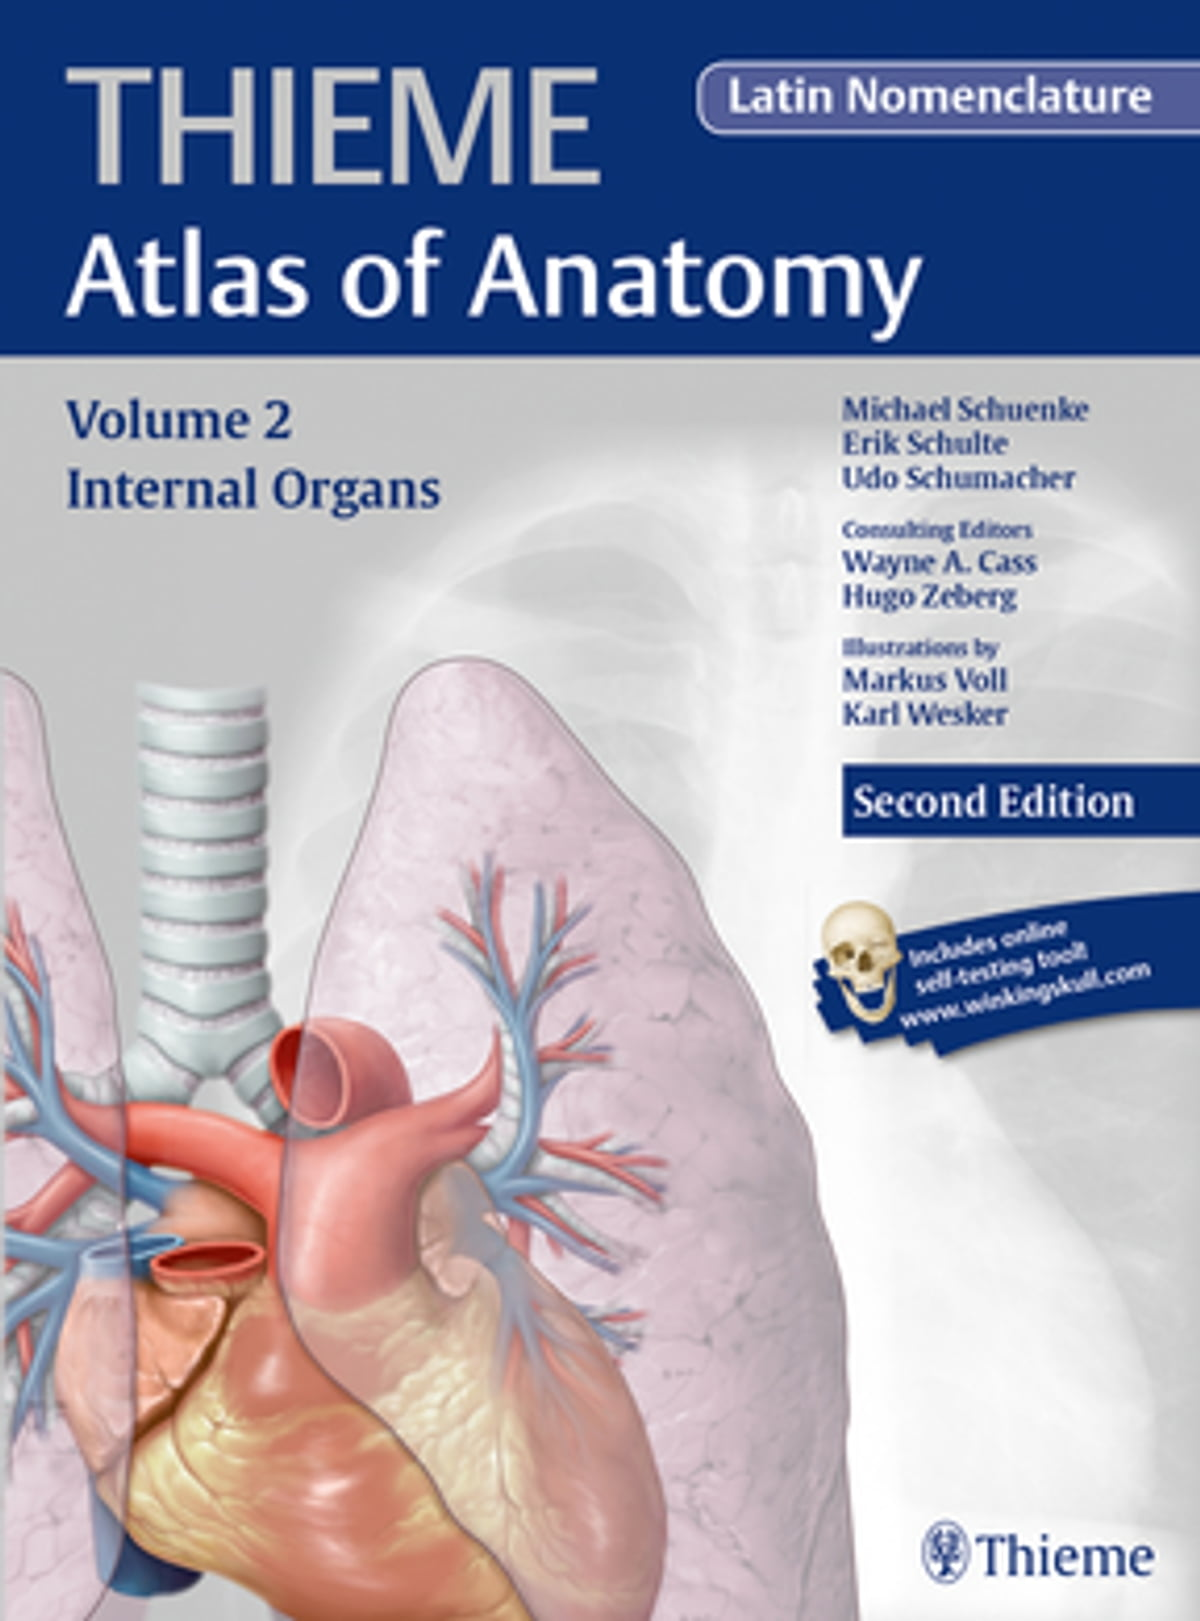 Internal Organs Thieme Atlas Of Anatomy Latin Nomenclature Ebook